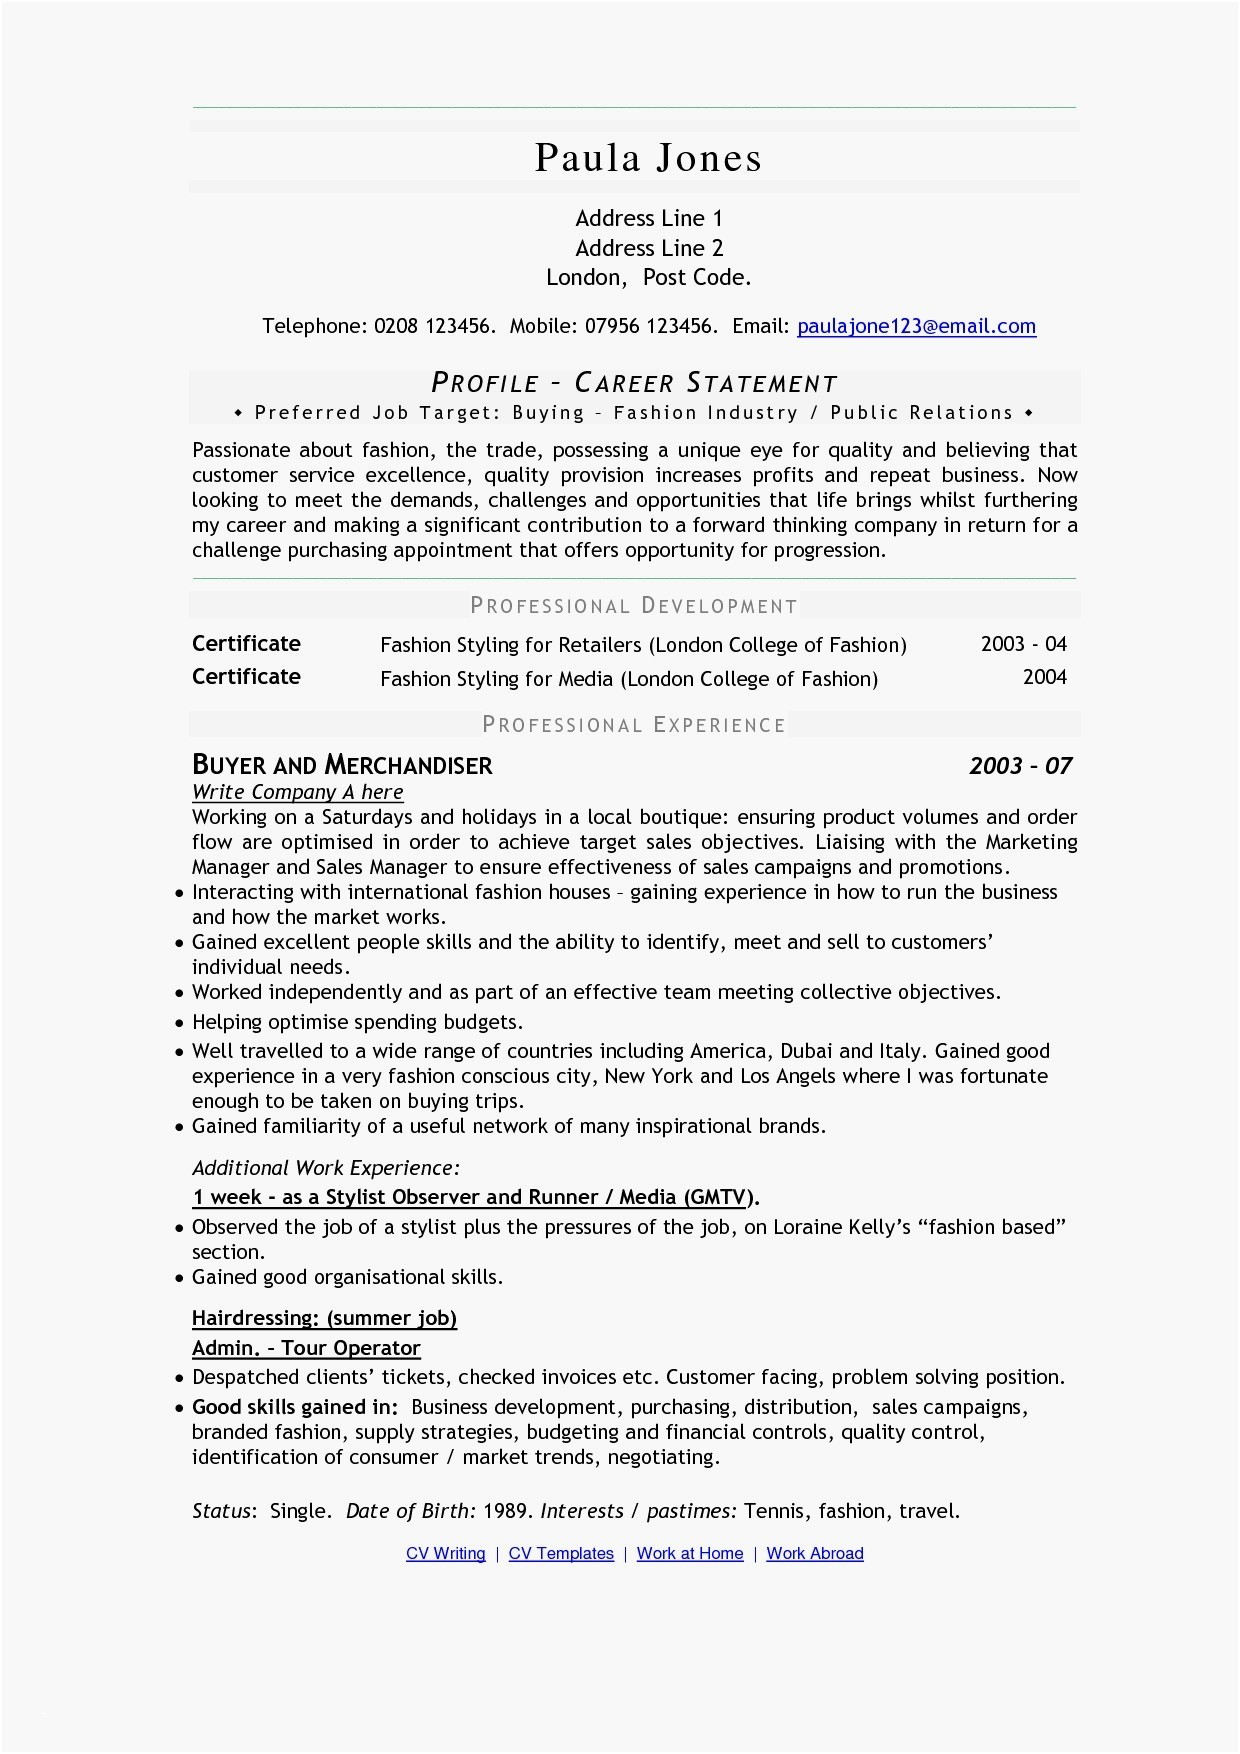 Best Profile for Resume - Profile for Resume New Resume Examples Profile Examples Resumes